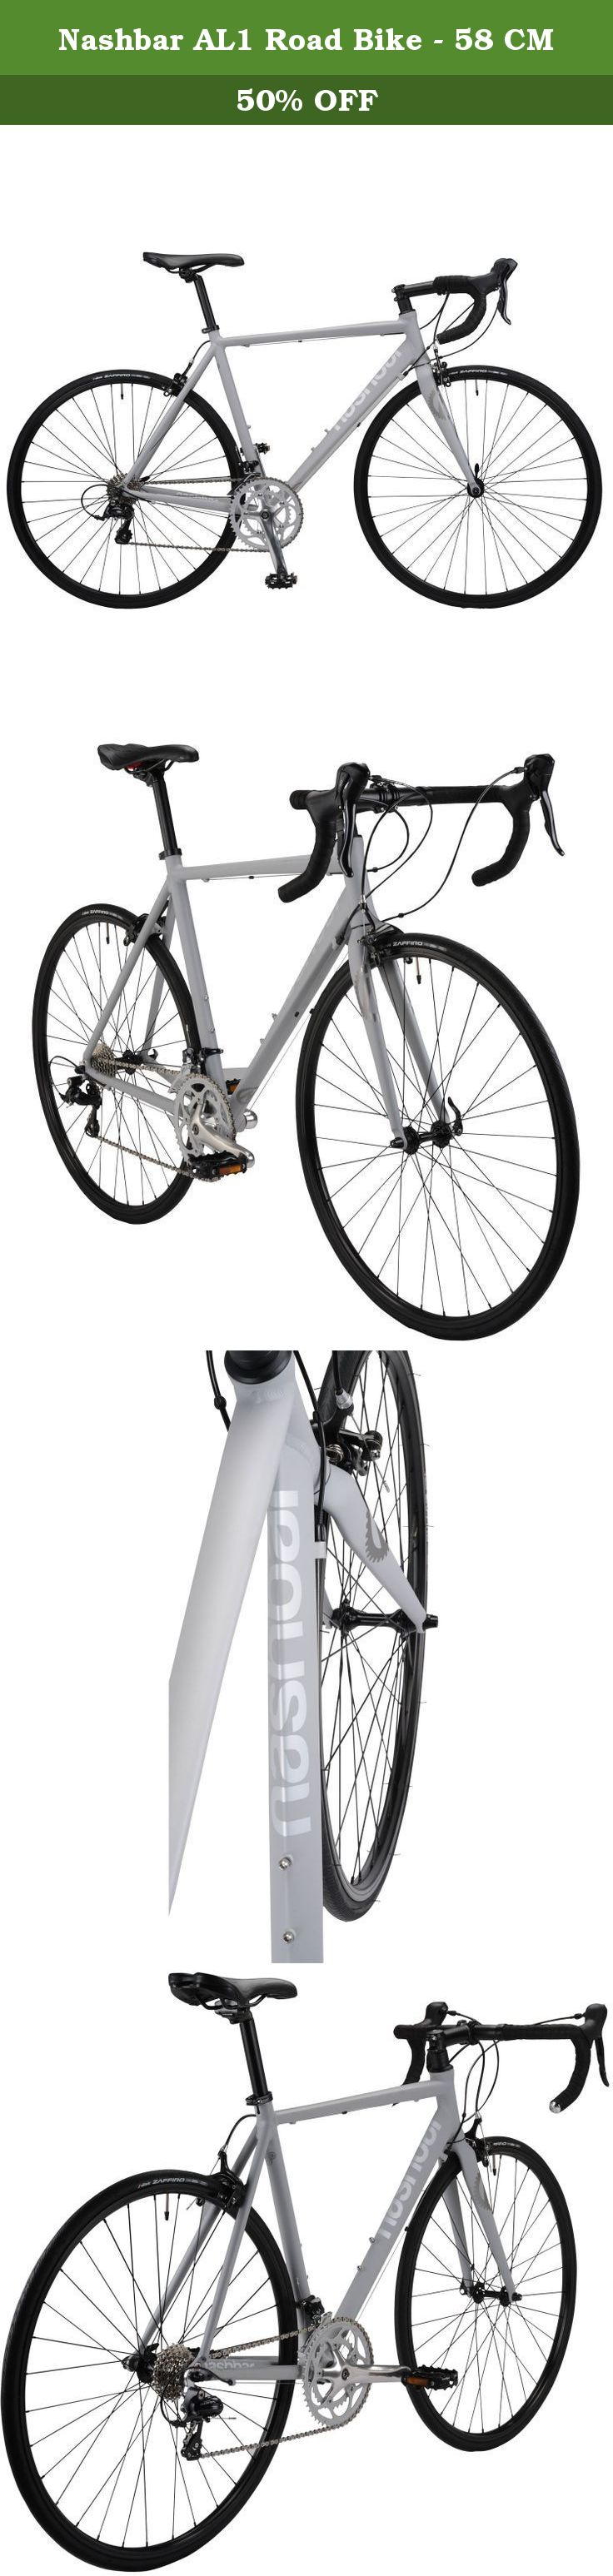 Nashbar Al1 Road Bike 58 Cm Value Abounds While The Price